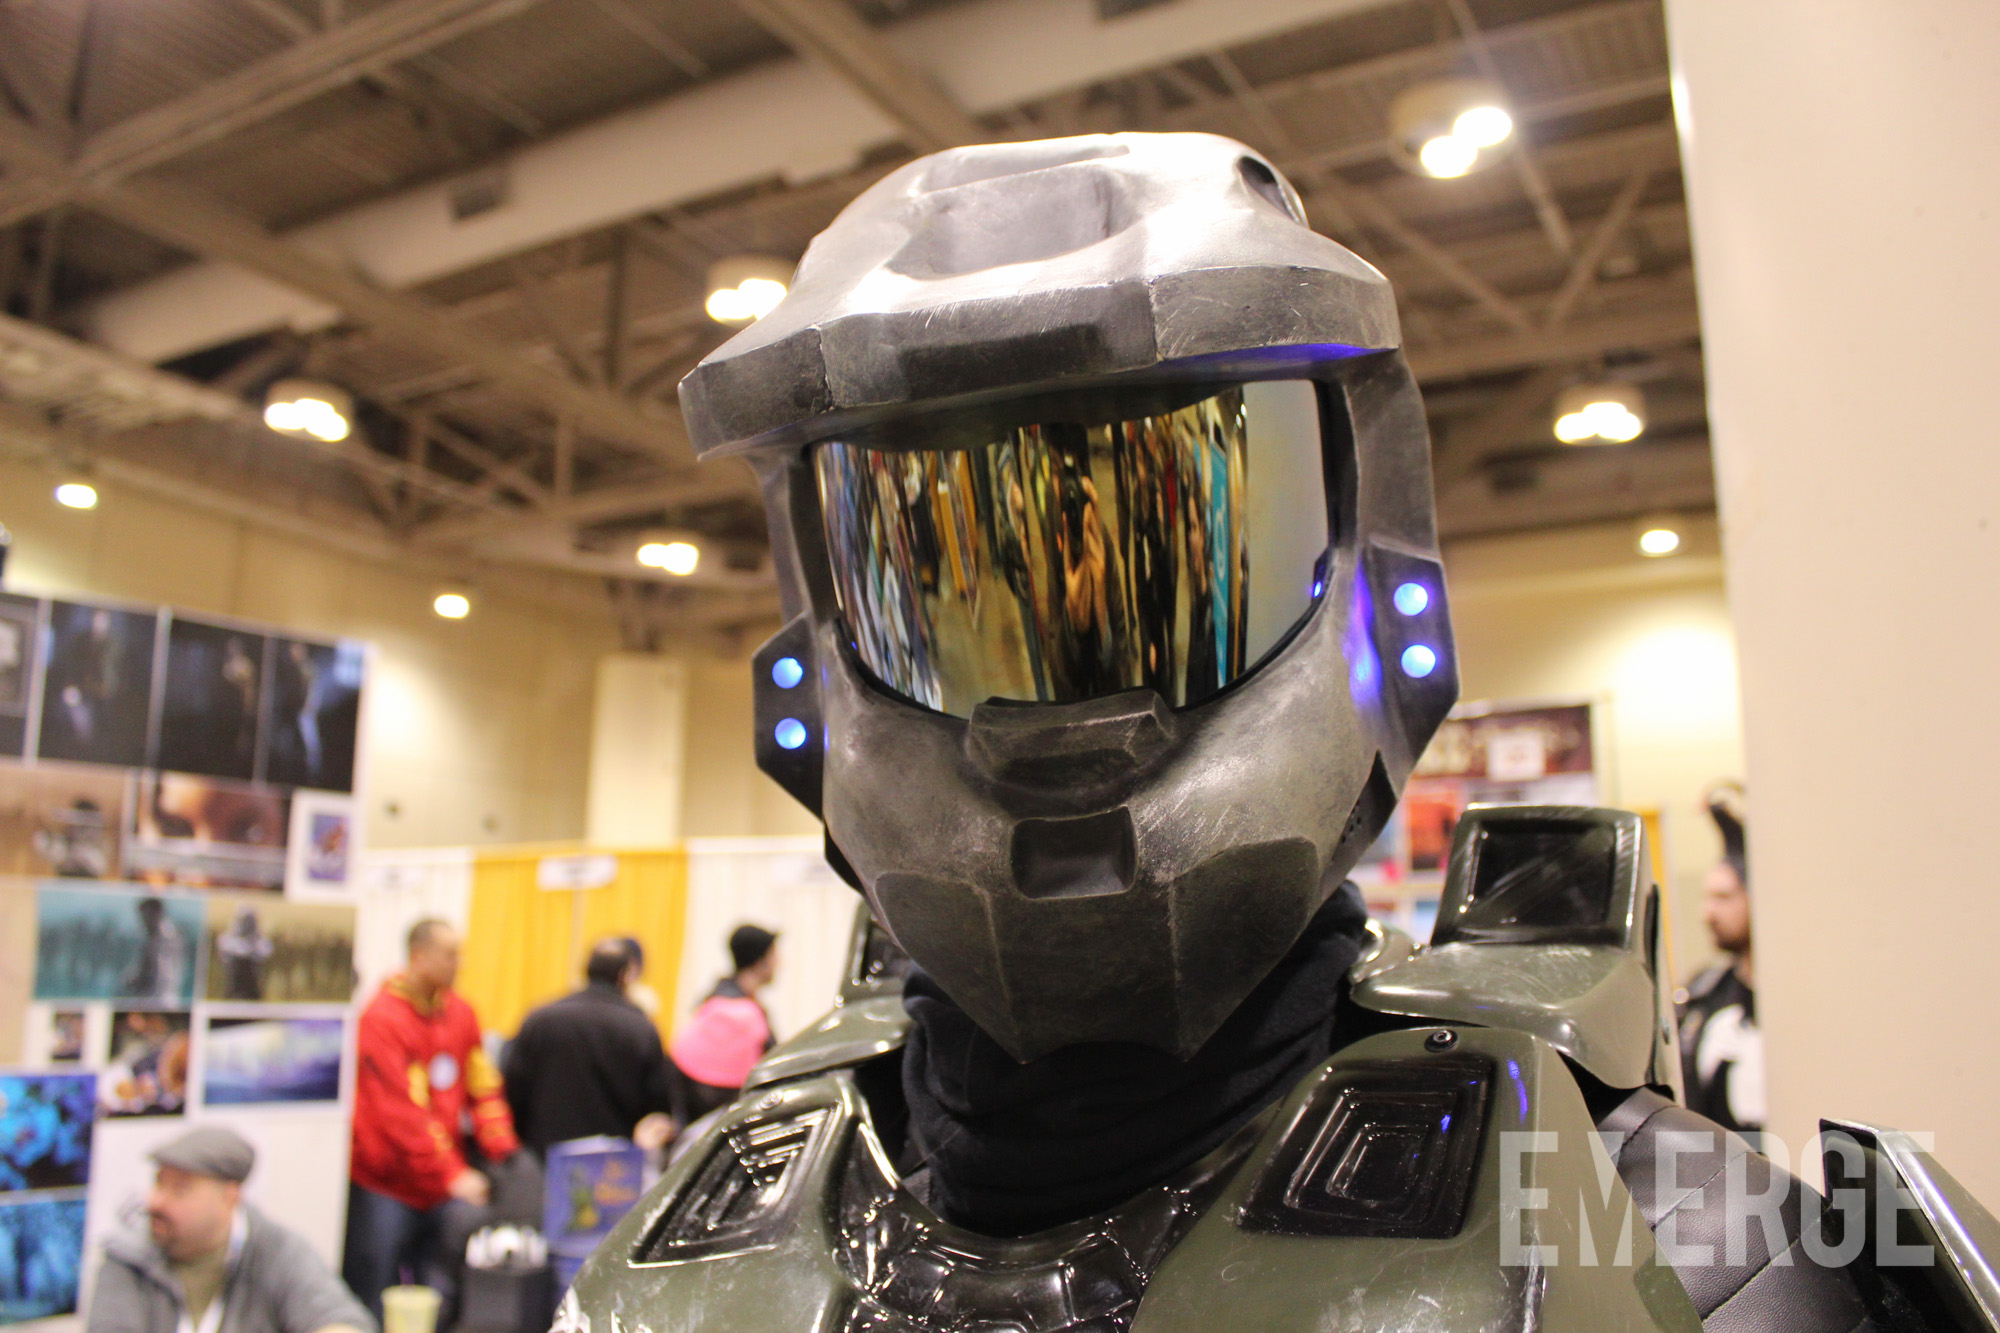 You can't see it, but Master Chief is smiling big with Halo 5 coming out later this year